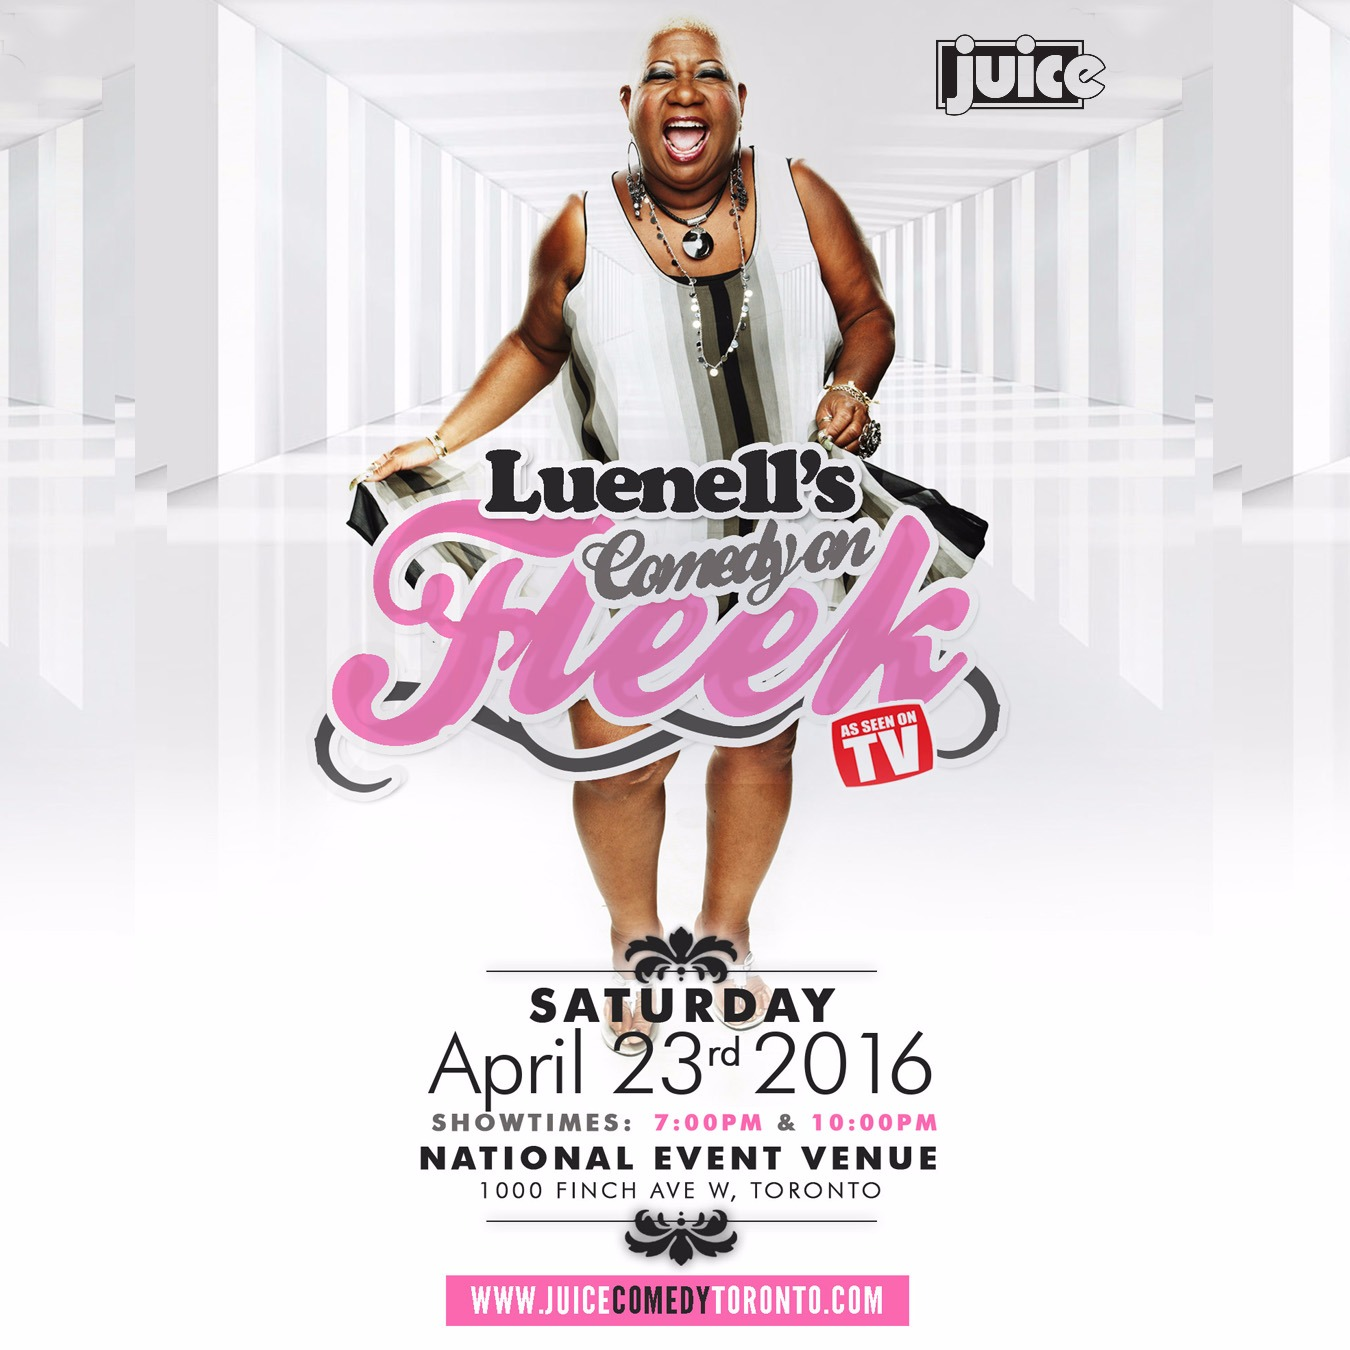 Luenell's Comedy On Fleek in Toronto | 10:00PM (Late Show)